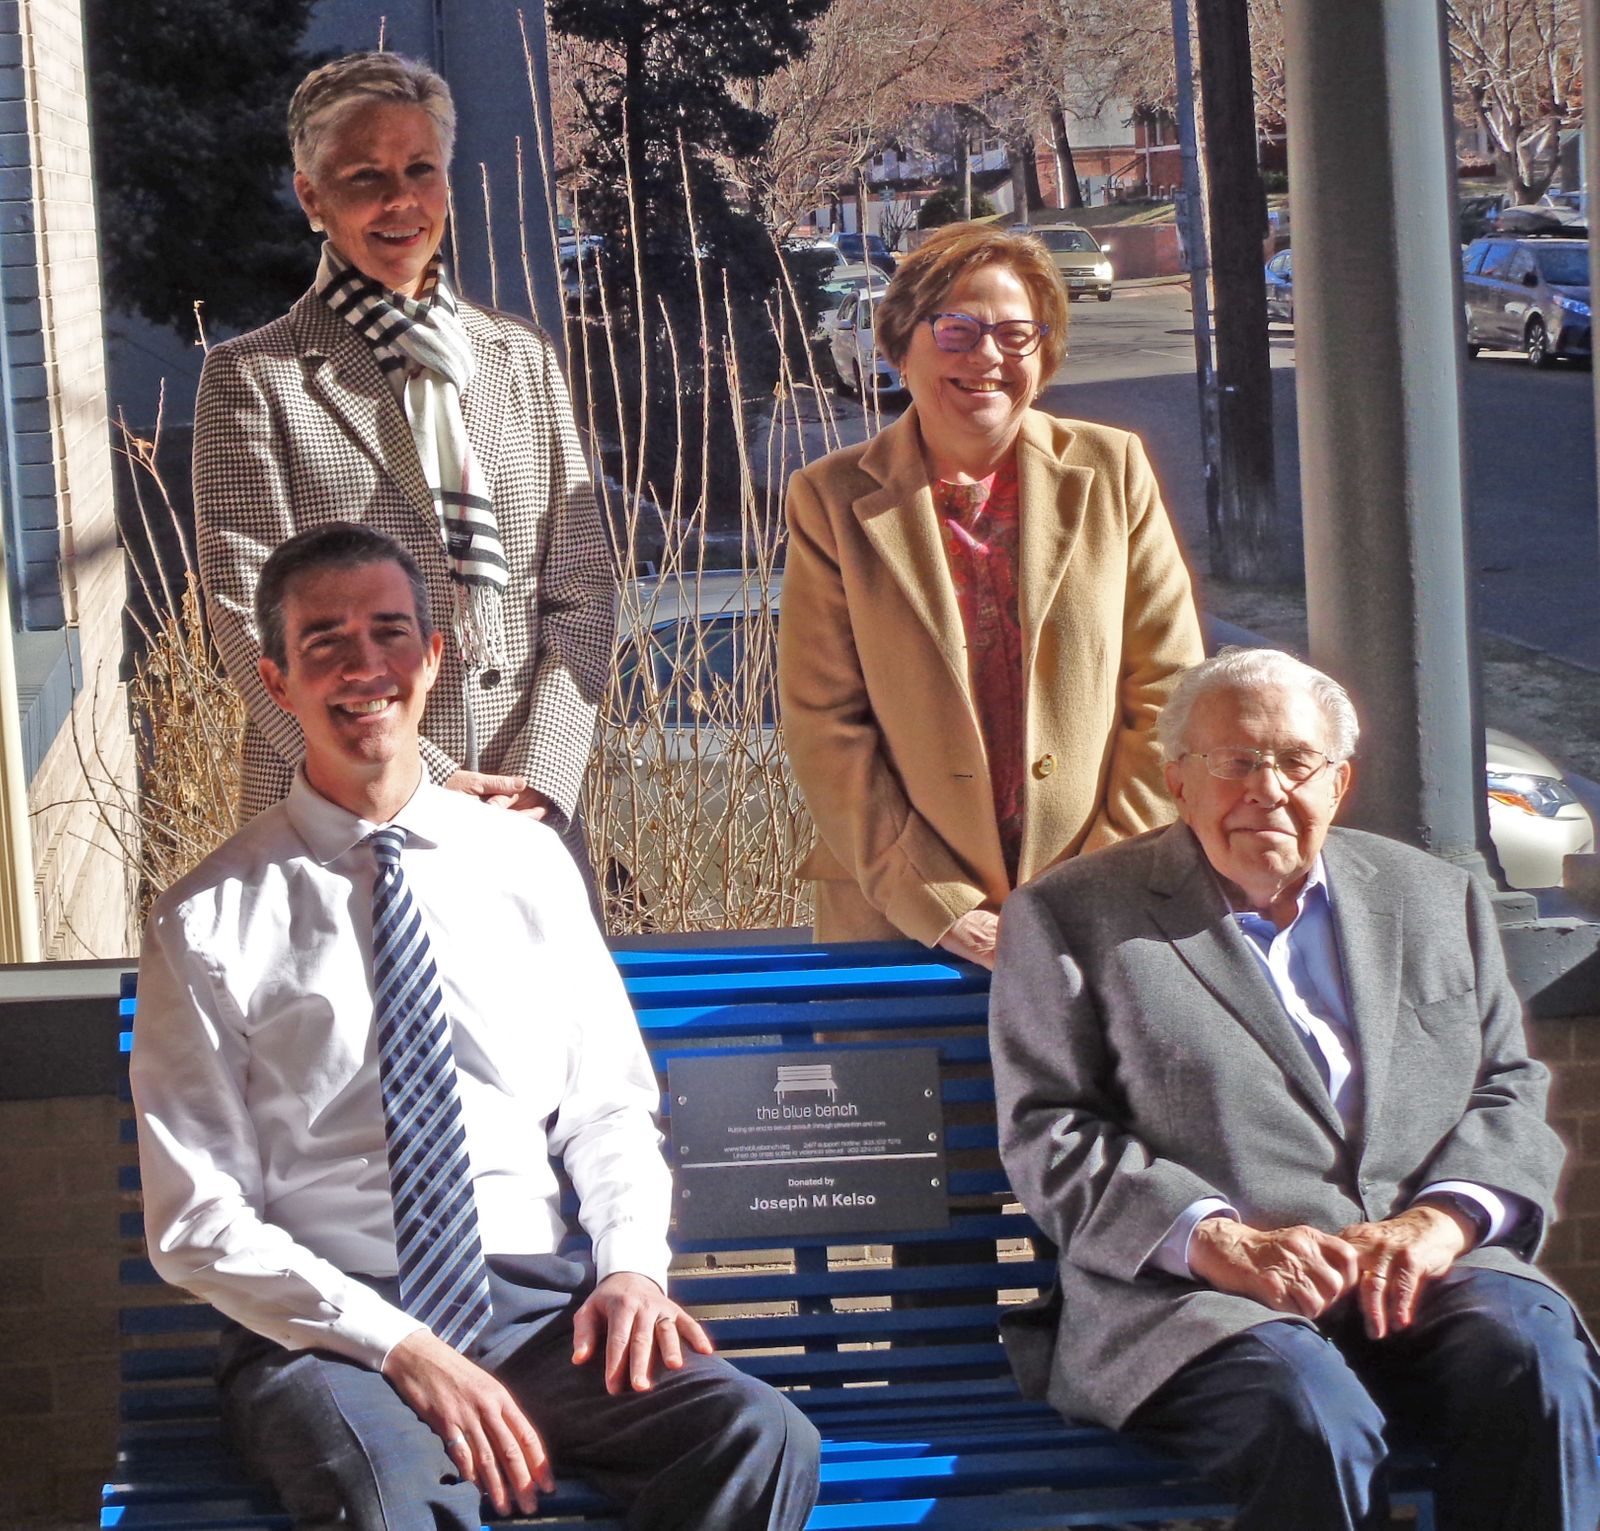 Photo of leadership members from TheBlueBench organization sitting or standing near a blue bench.